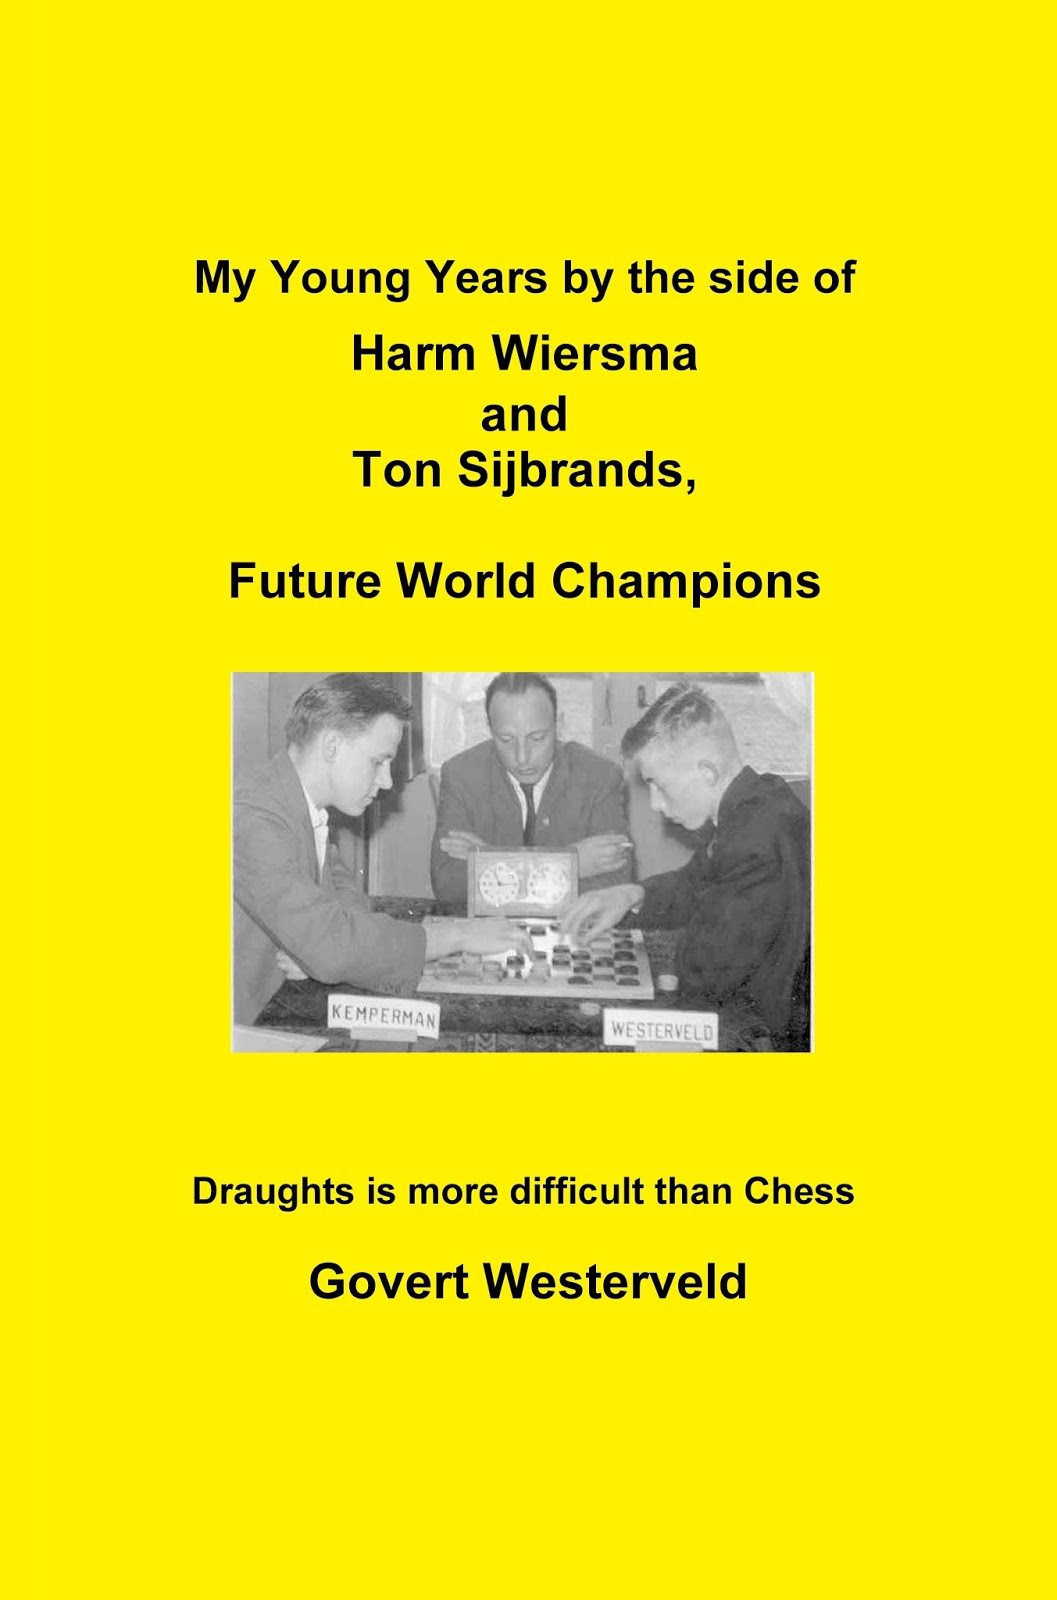 History of draughts checkers at the end of 2017 a draughts player asked me to have translations of some of my spanish books that deal with the history of draughts fandeluxe Image collections